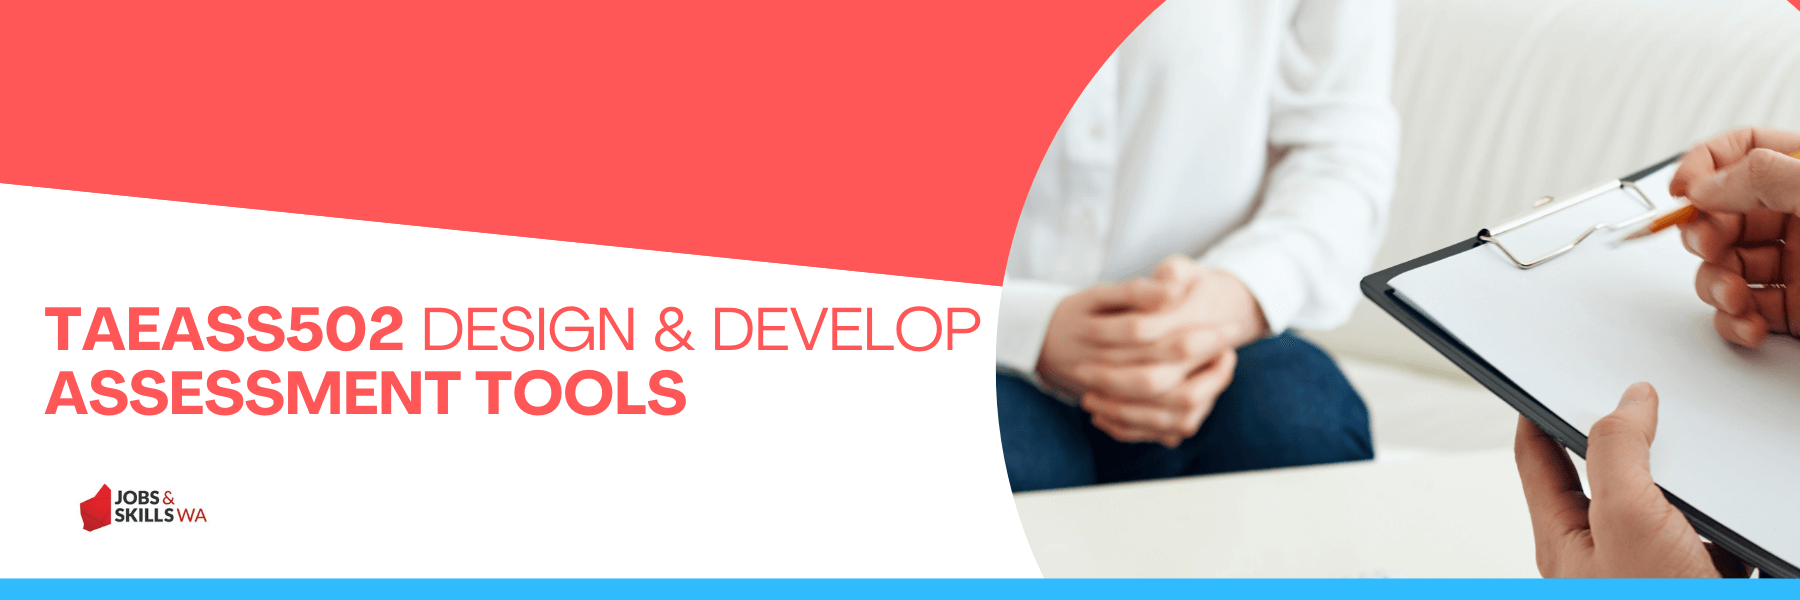 TAEASS502-Design-and-Develop-Assessment-Tools